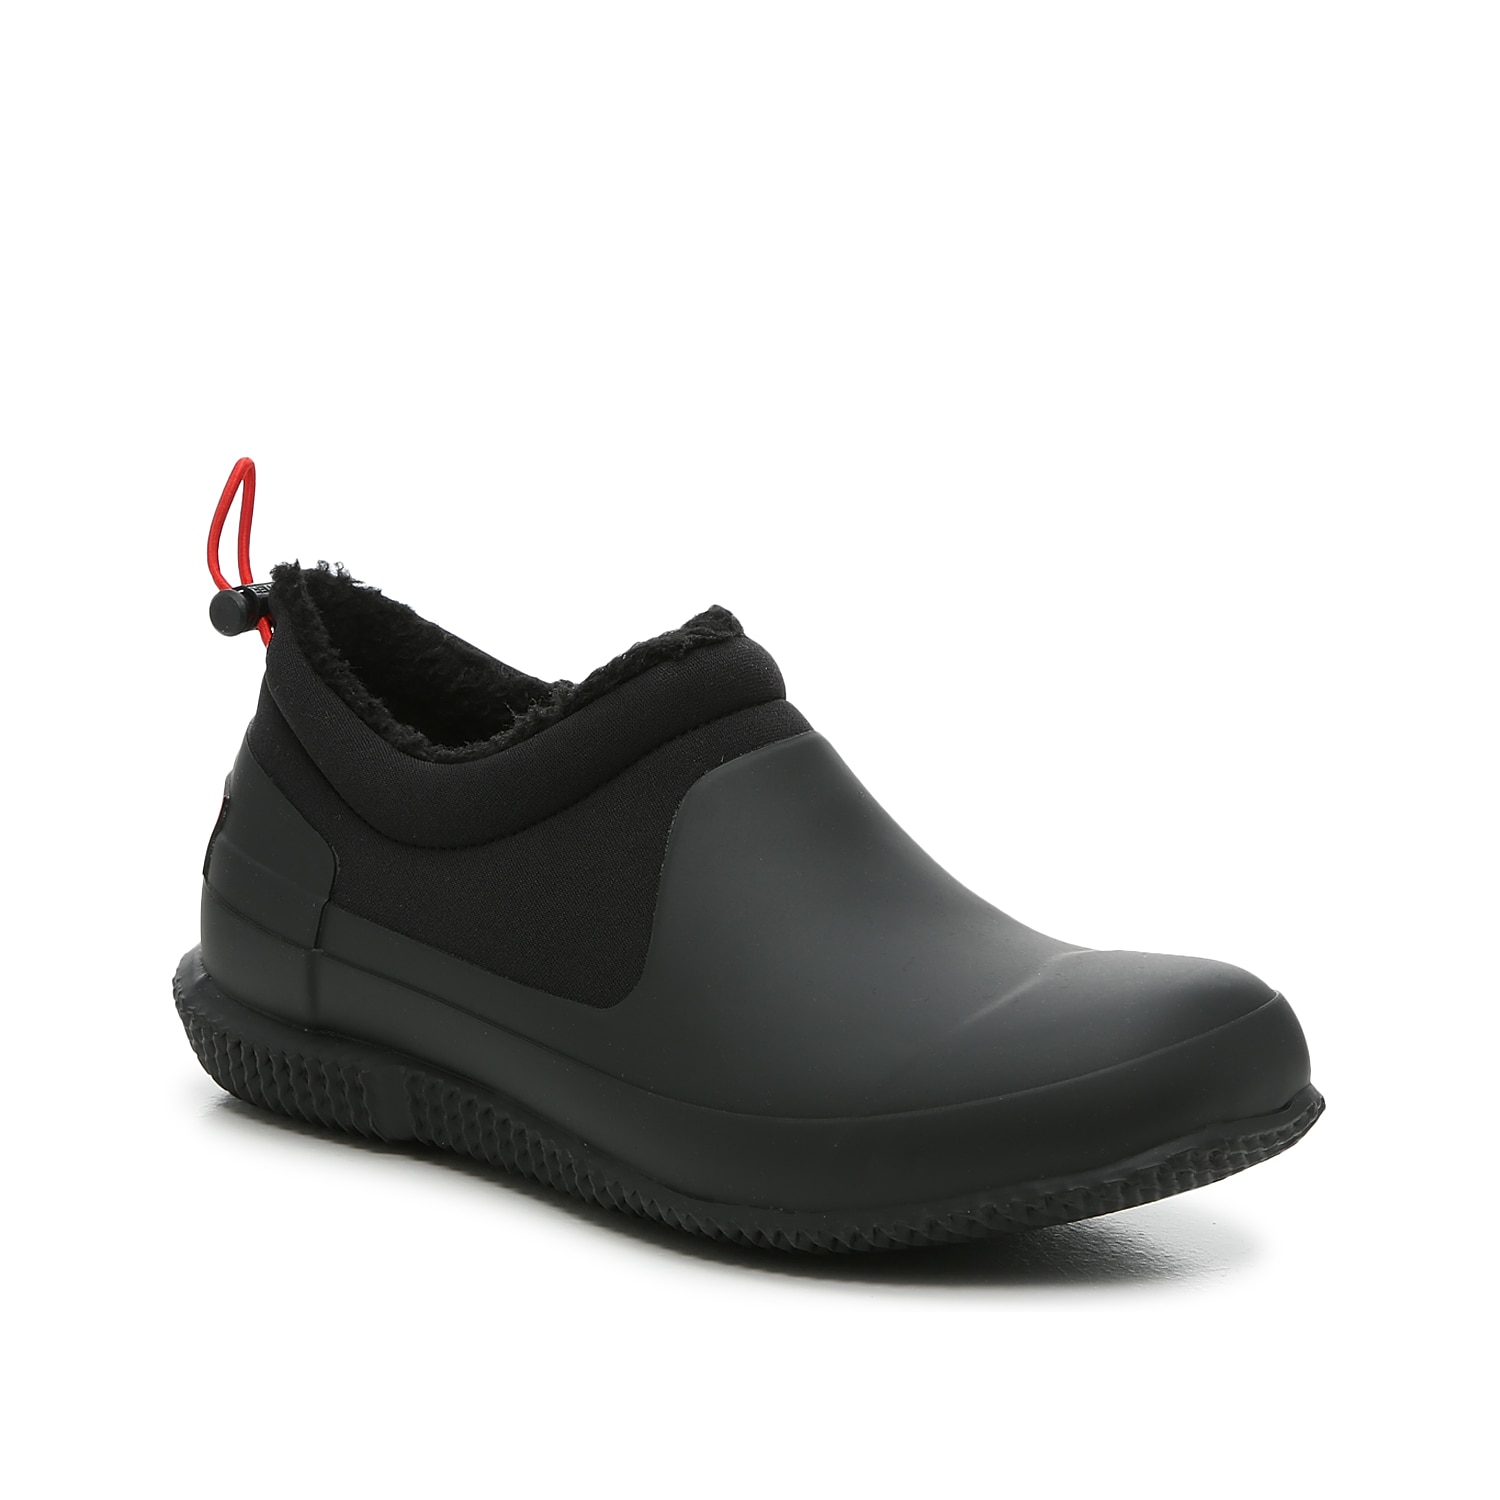 The Hunter Original Sherpa Short rain booties are handcrafted from natural, waterproof rubber and insulating neoprene. Featuring a drawstring bungee cord closure that perfects the fit, these snug slipper shoes are lined with Sherpa fleece and thermal insulation that can withstand temps as low as -5°C/23°F. Click here for Boot Measuring Guide.